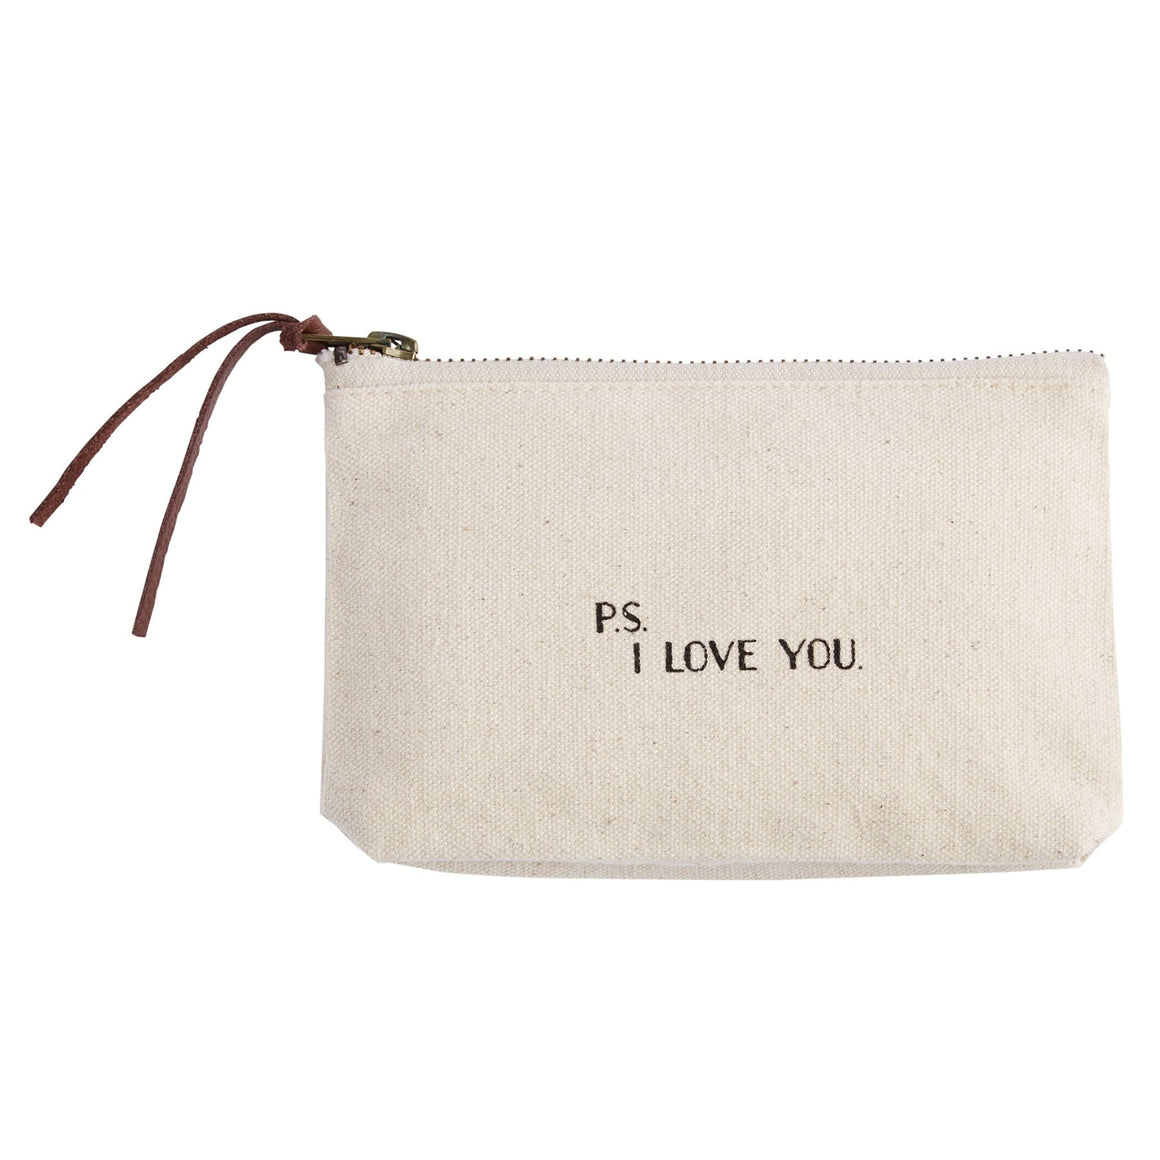 """P.S. I LOVE YOU."" Canvas Cosmetic Bag"